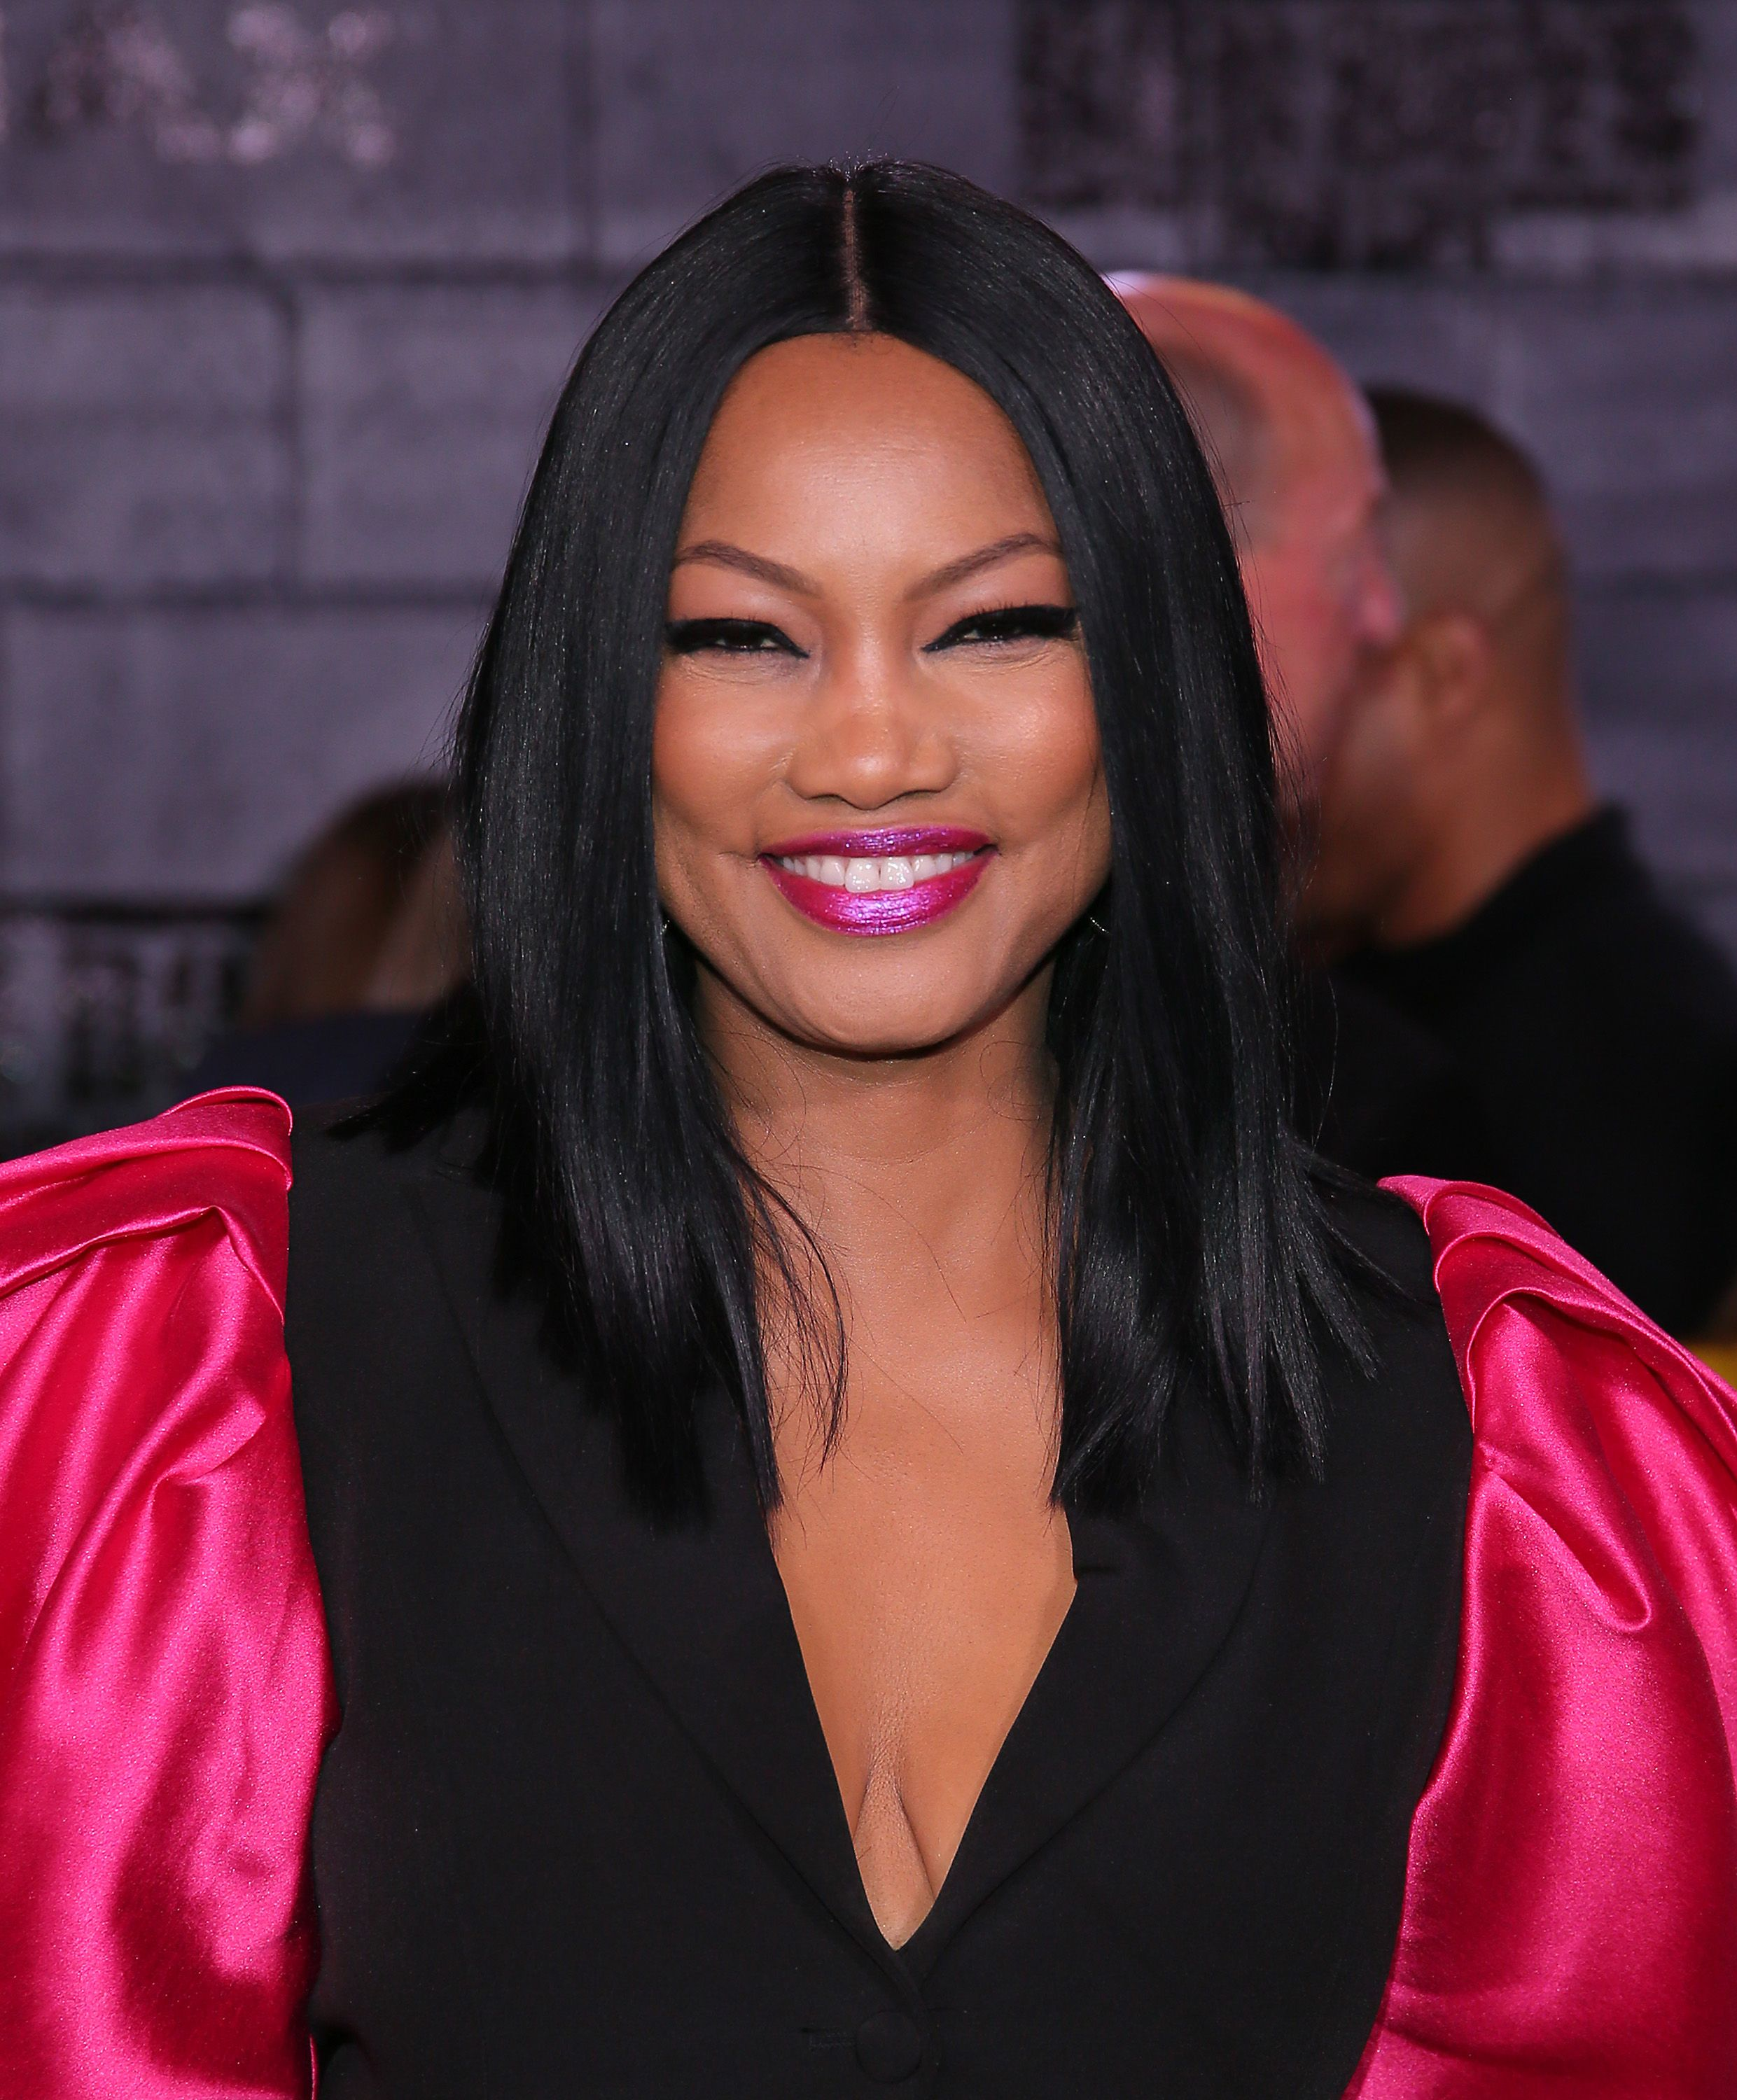 """Garcelle Beauvais attends the world premiere of """"Bad Boys for Life"""" at TCL Chinese Theatre on January 14, 2020 in Hollywood, California.   Source: Getty Images"""